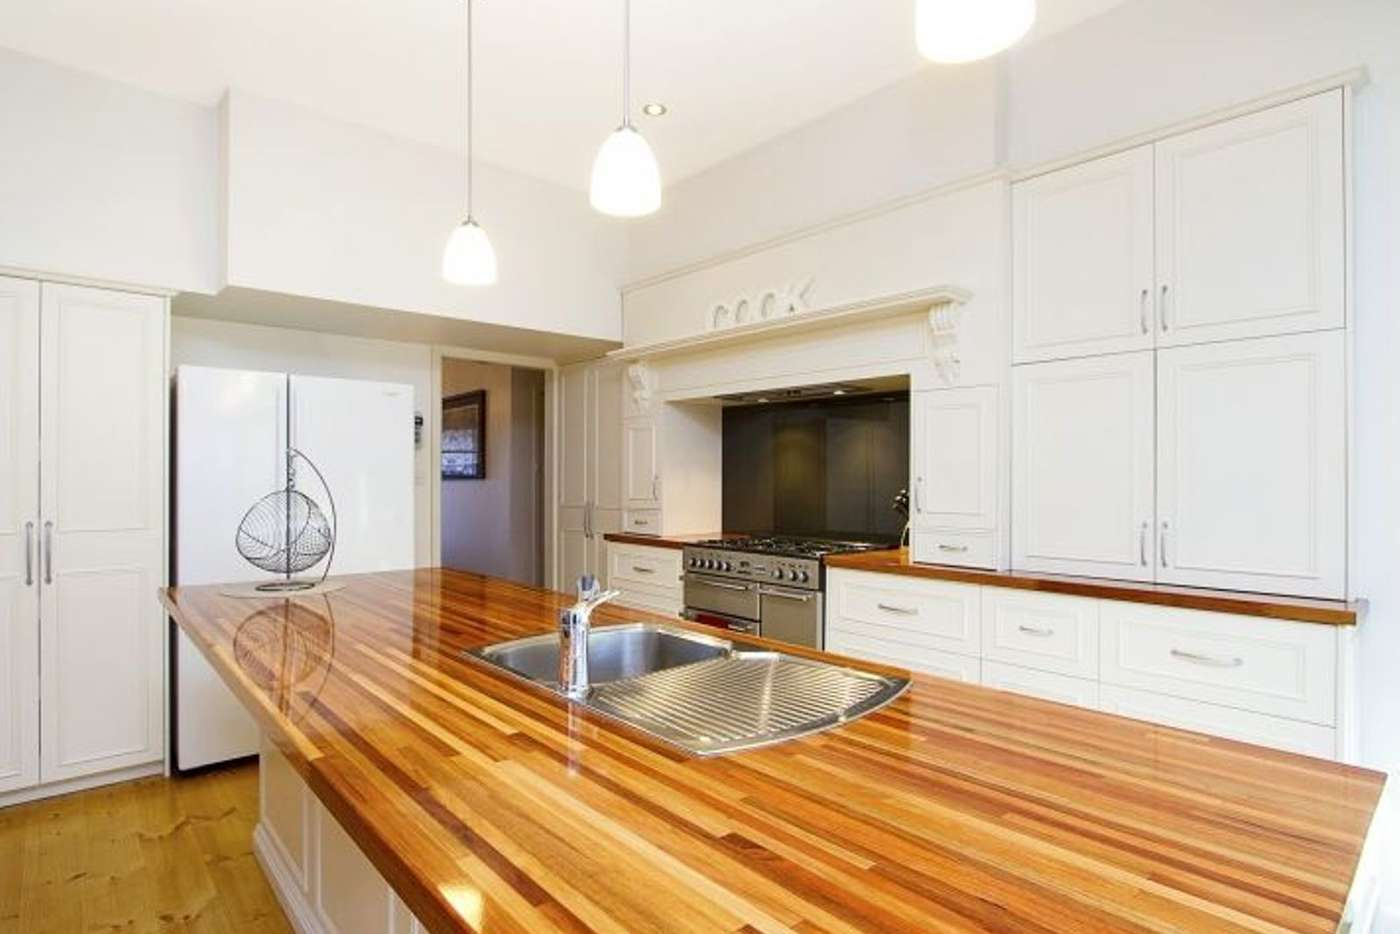 Main view of Homely house listing, 71 Forest Street, Bendigo VIC 3550